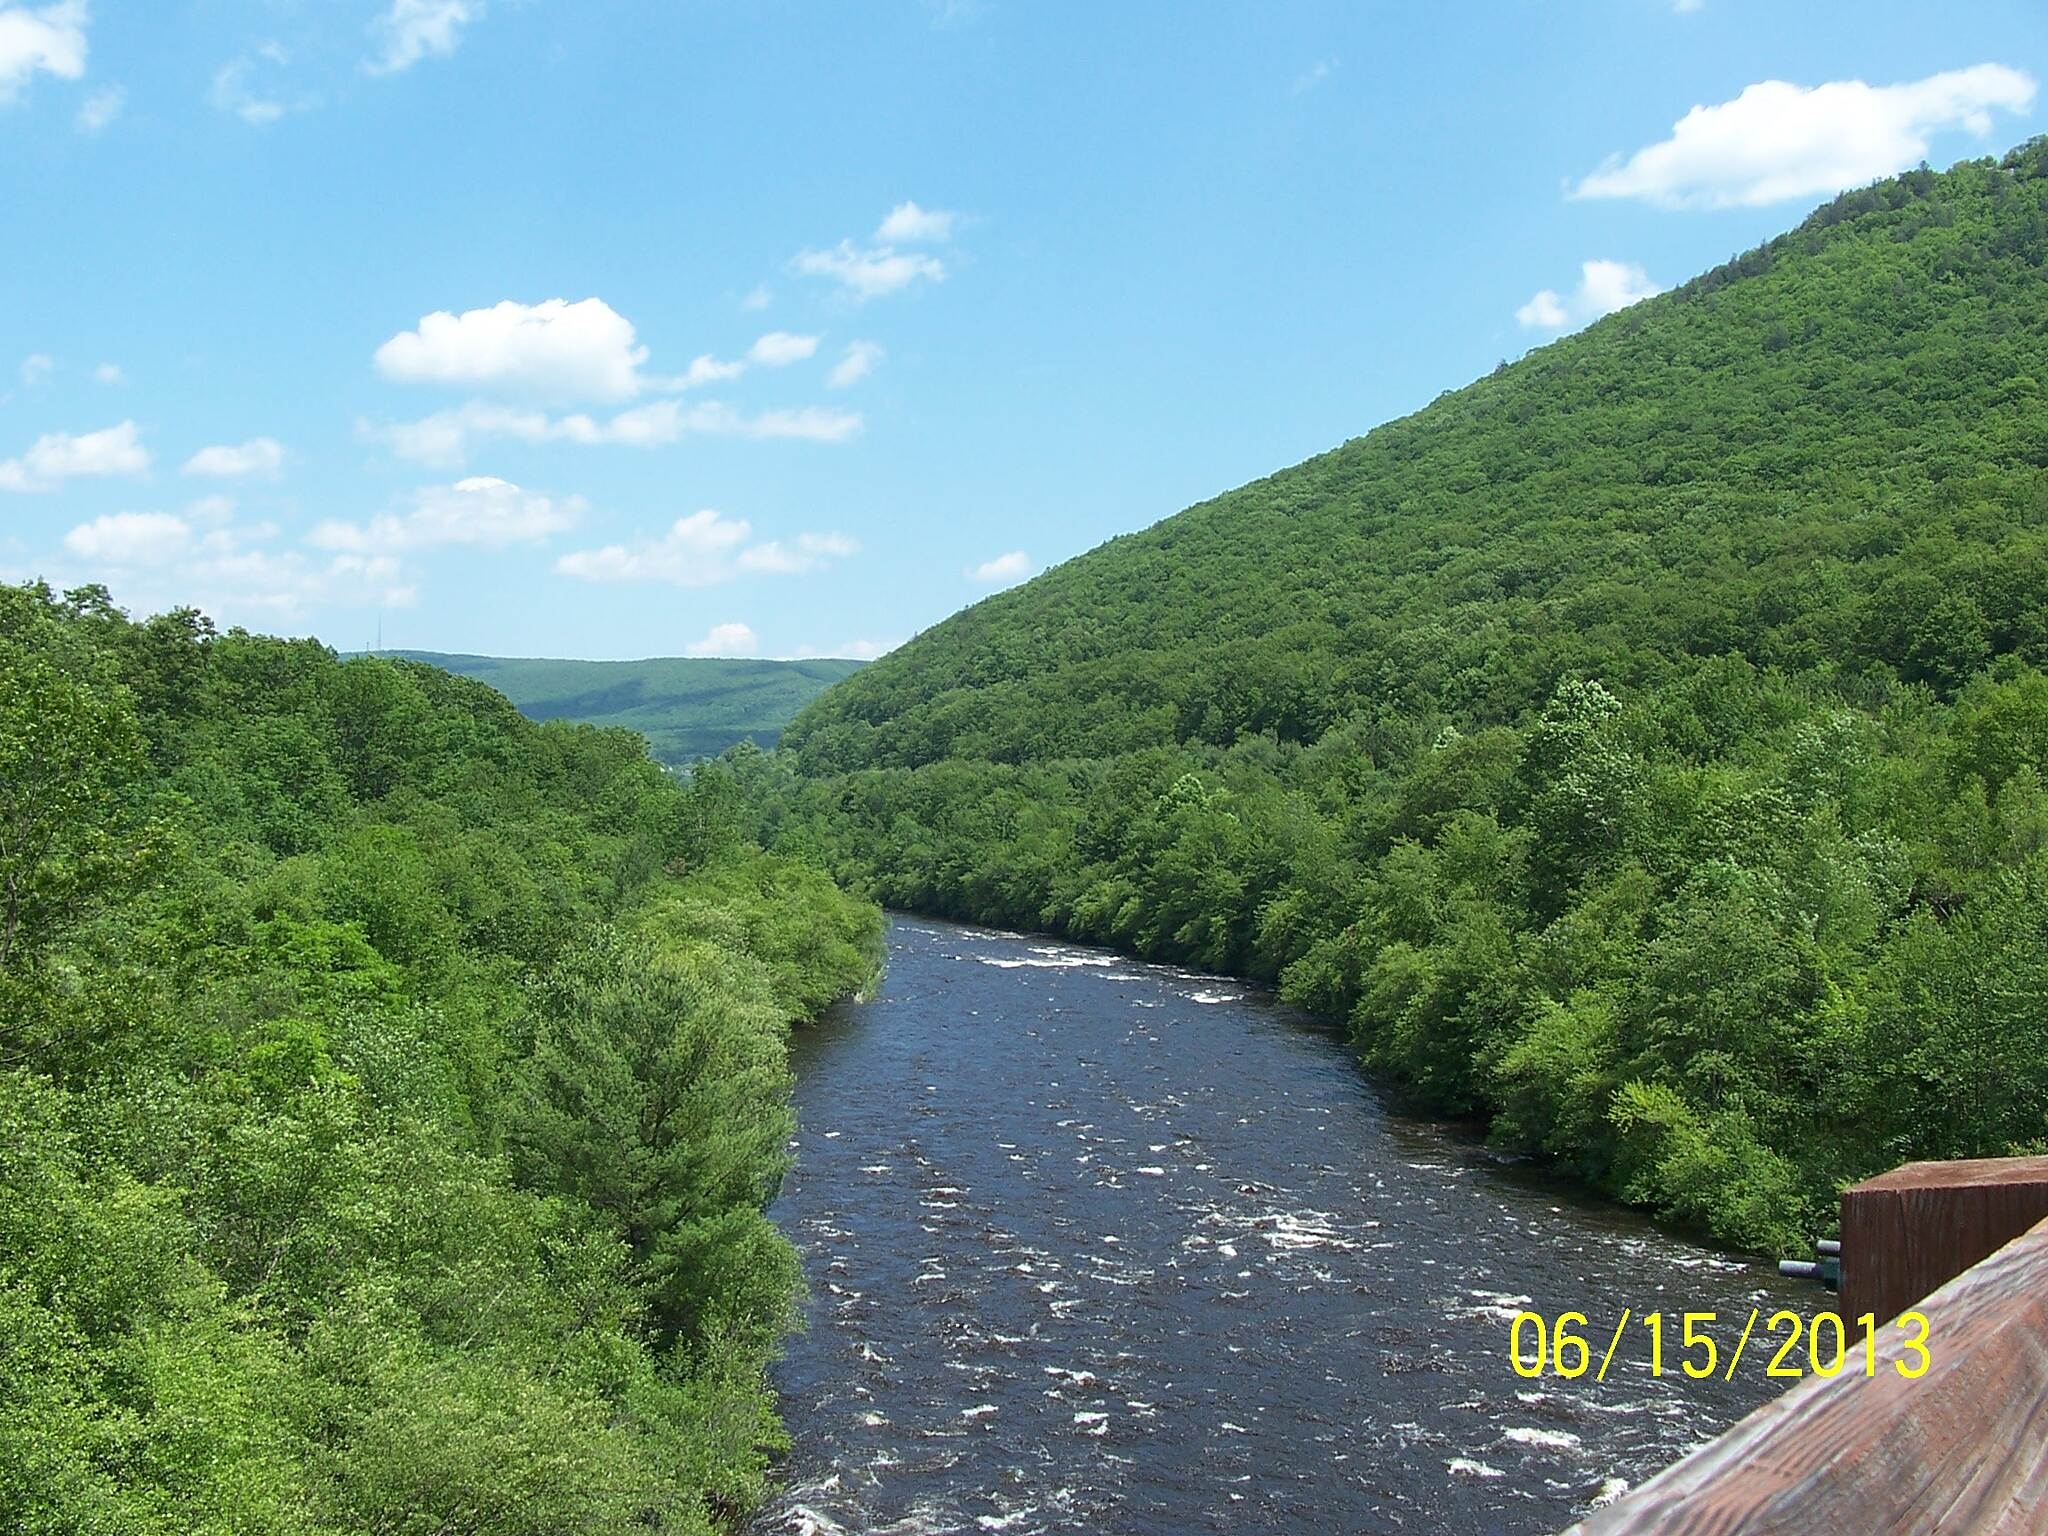 D & L Trail - Lehigh Gorge State Park Trail Lehigh River near Jim Thorpe This is the view of the Lehigh River from the